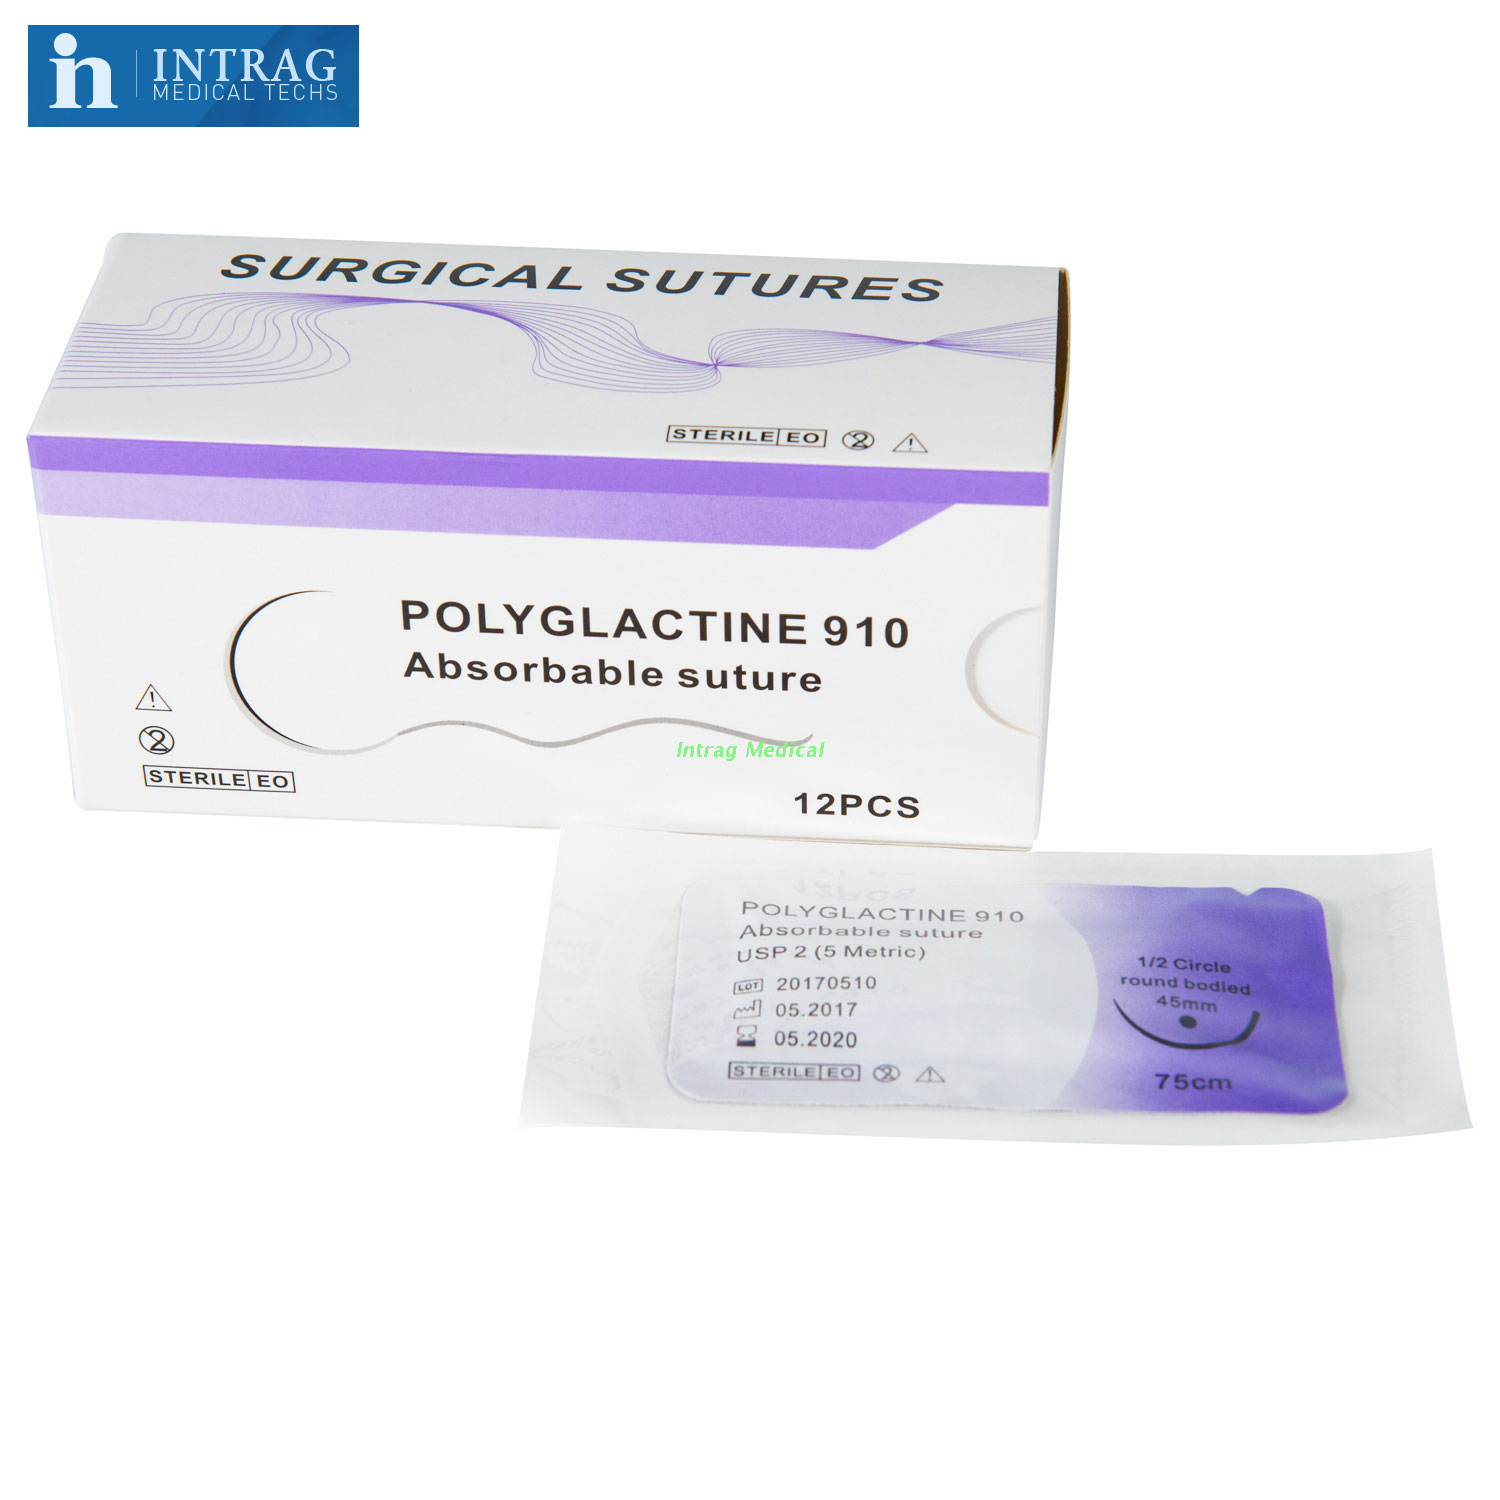 Nylon (Non-Absorbable) Suture